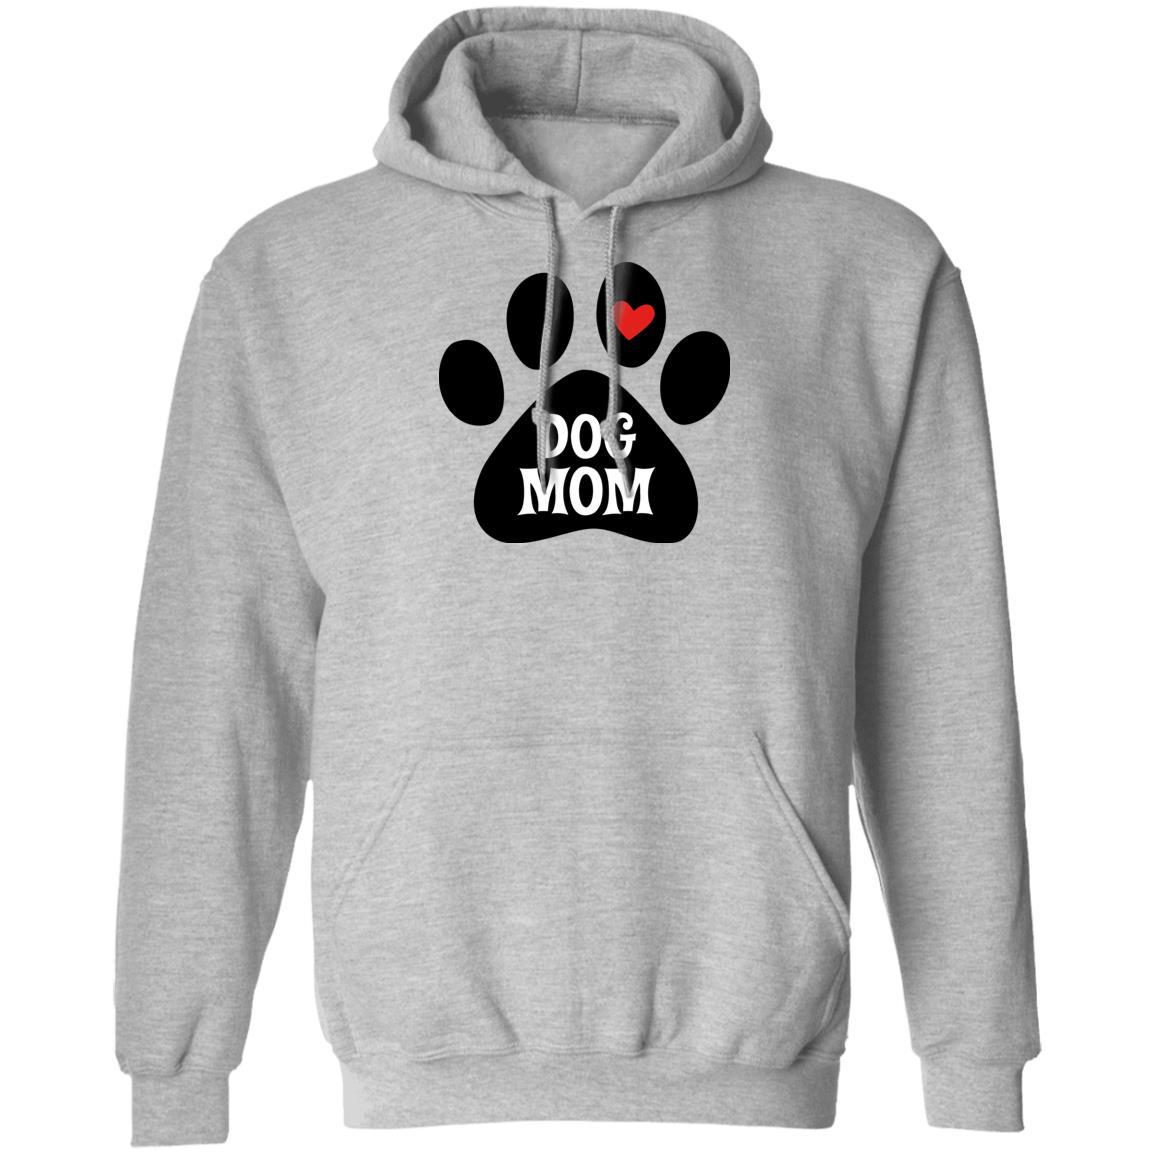 I'm A Dog Mom ❤️ Pullover Hoodie 🐾 Deal Up To 25% Off!